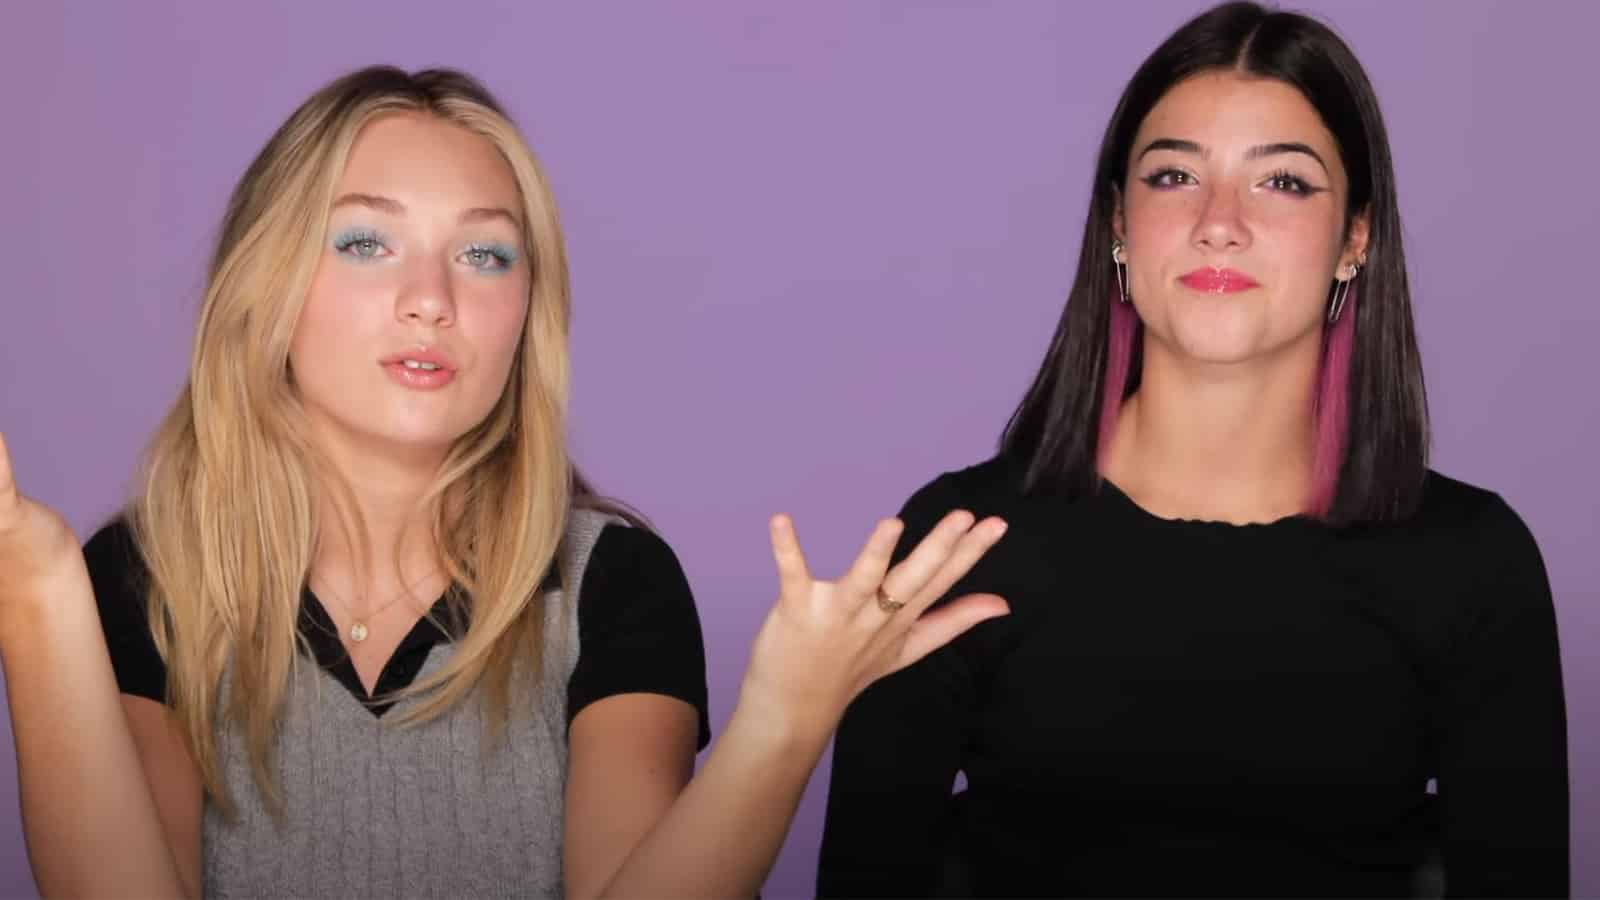 Charli D'Amelio and Maddie Ziegler show off their makeup for the camera.